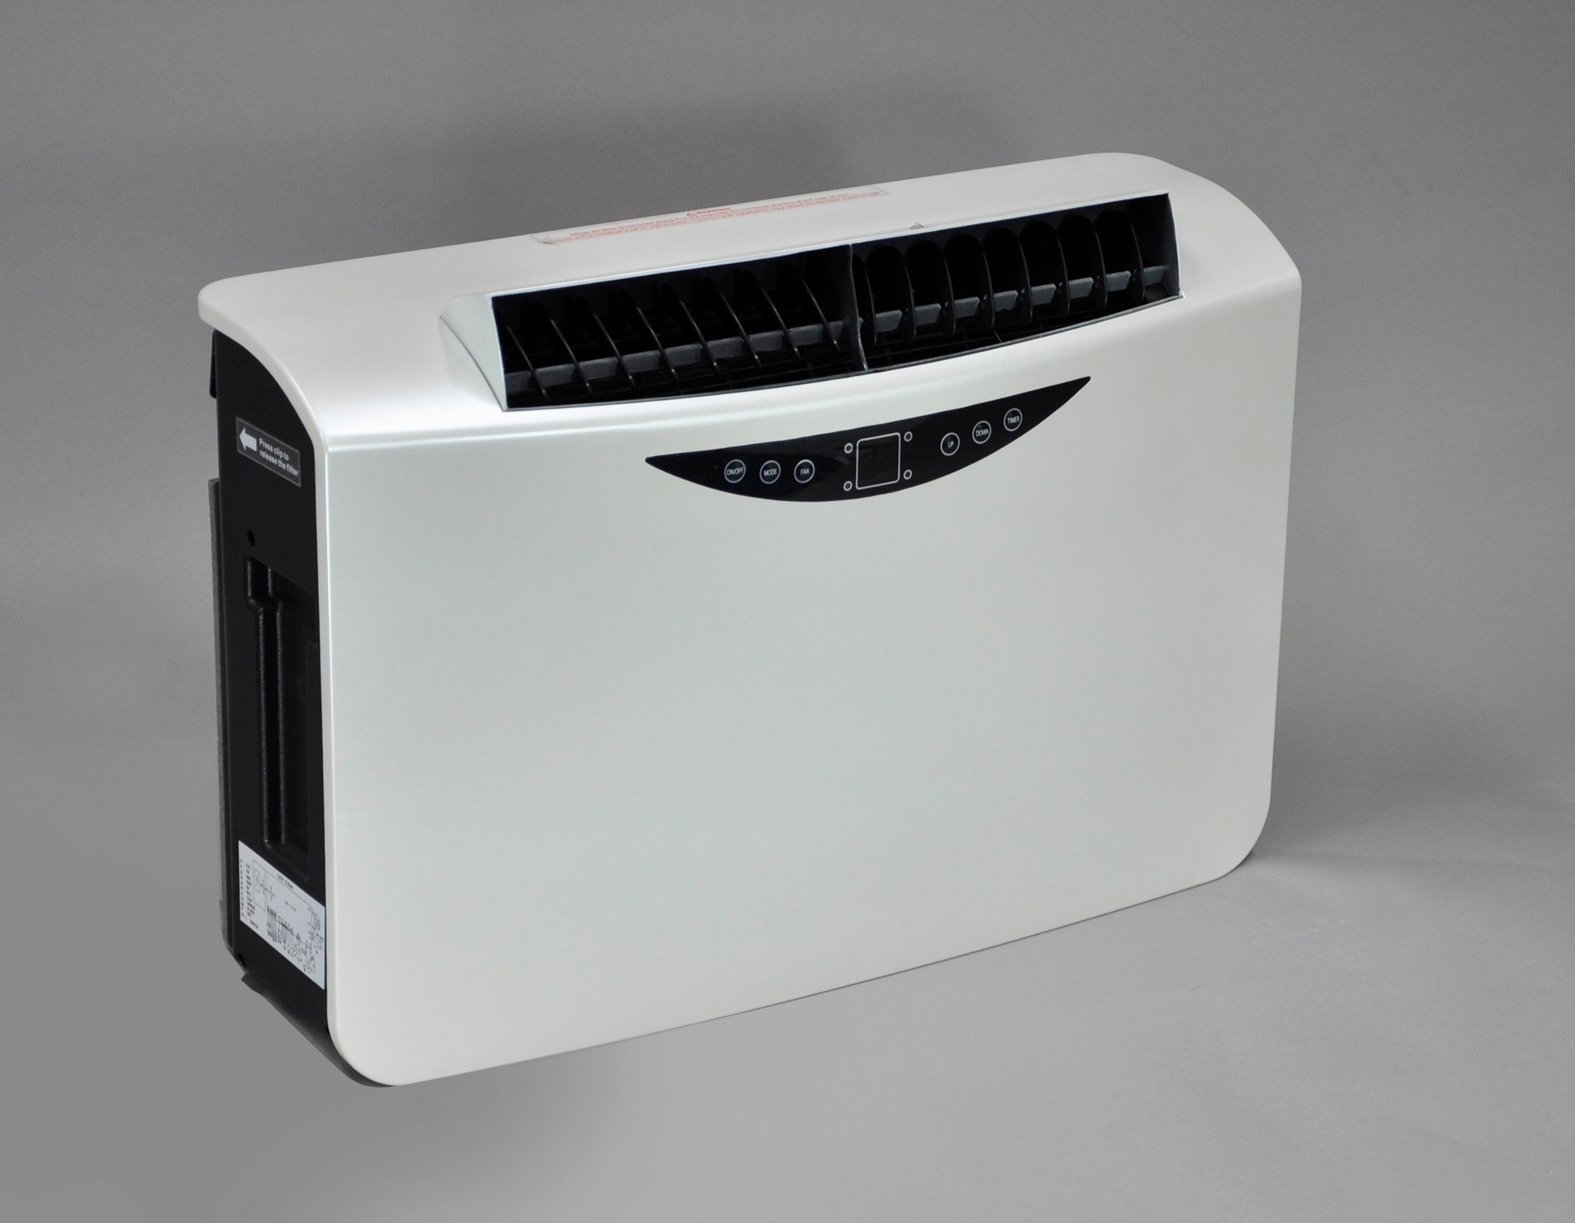 conservatory air conditioning unit Aircon247.com portable air  #4F5257